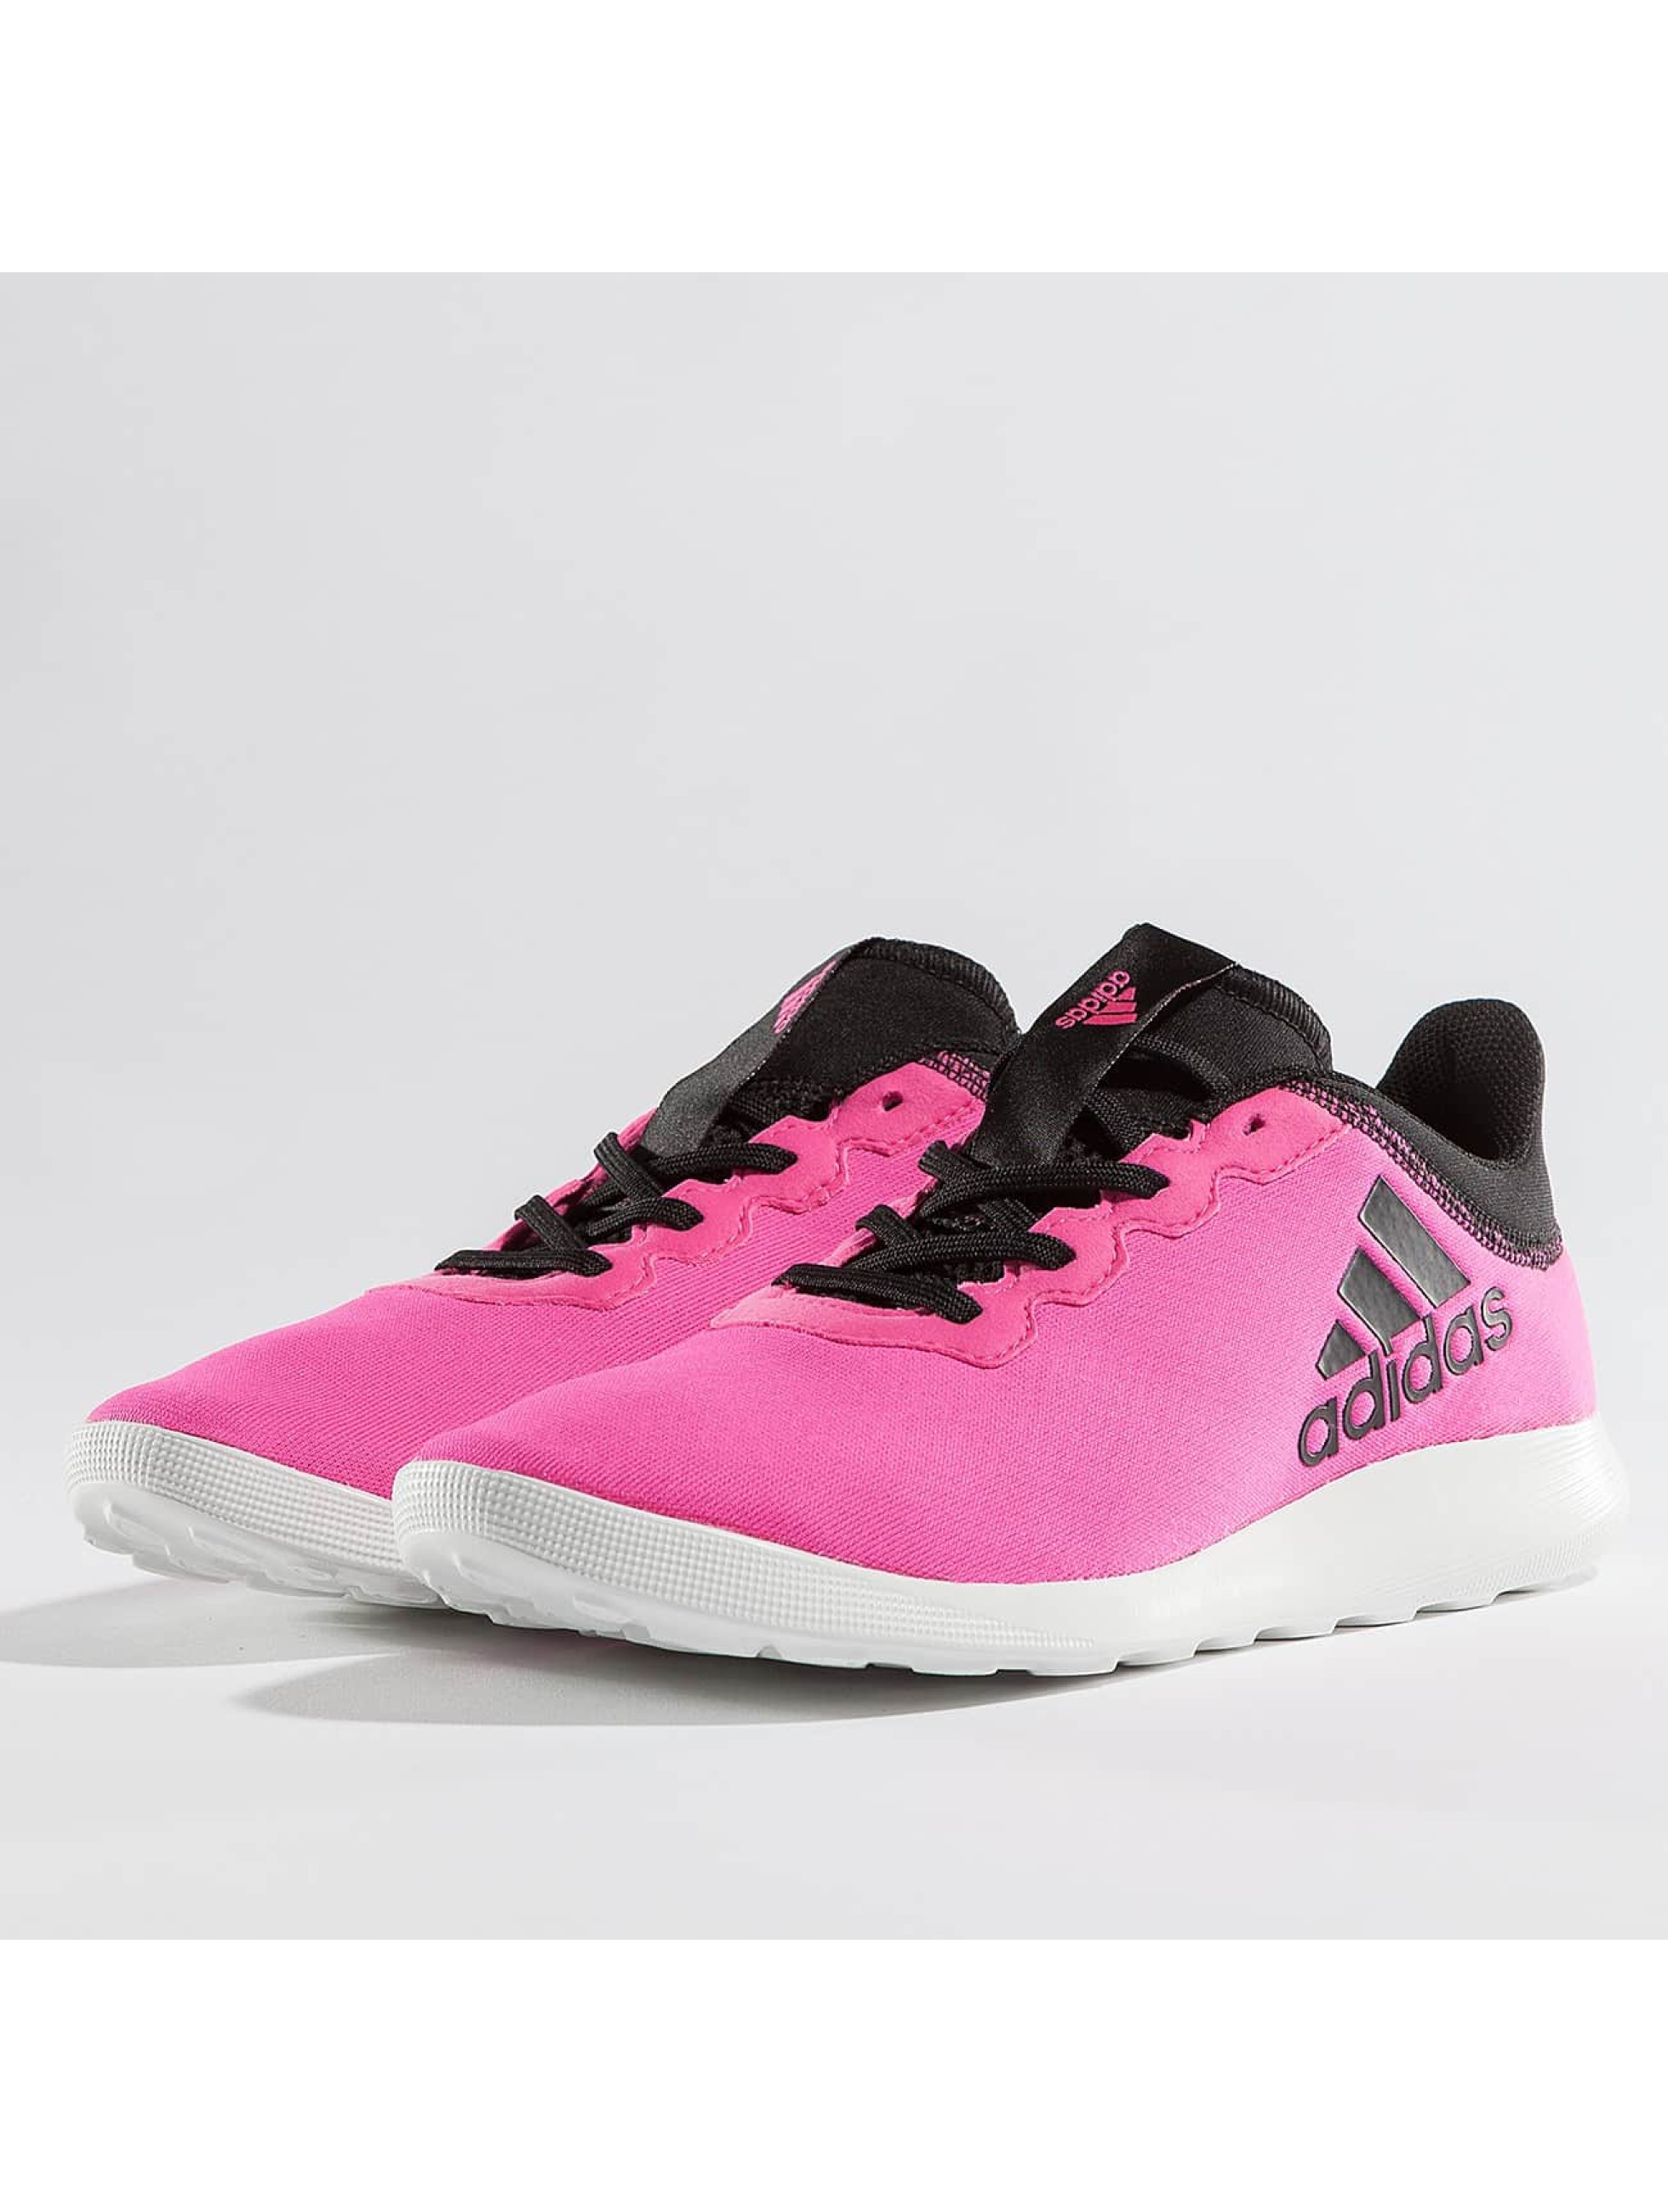 adidas Performance Frauen Sneaker X 16.4 TR in pink